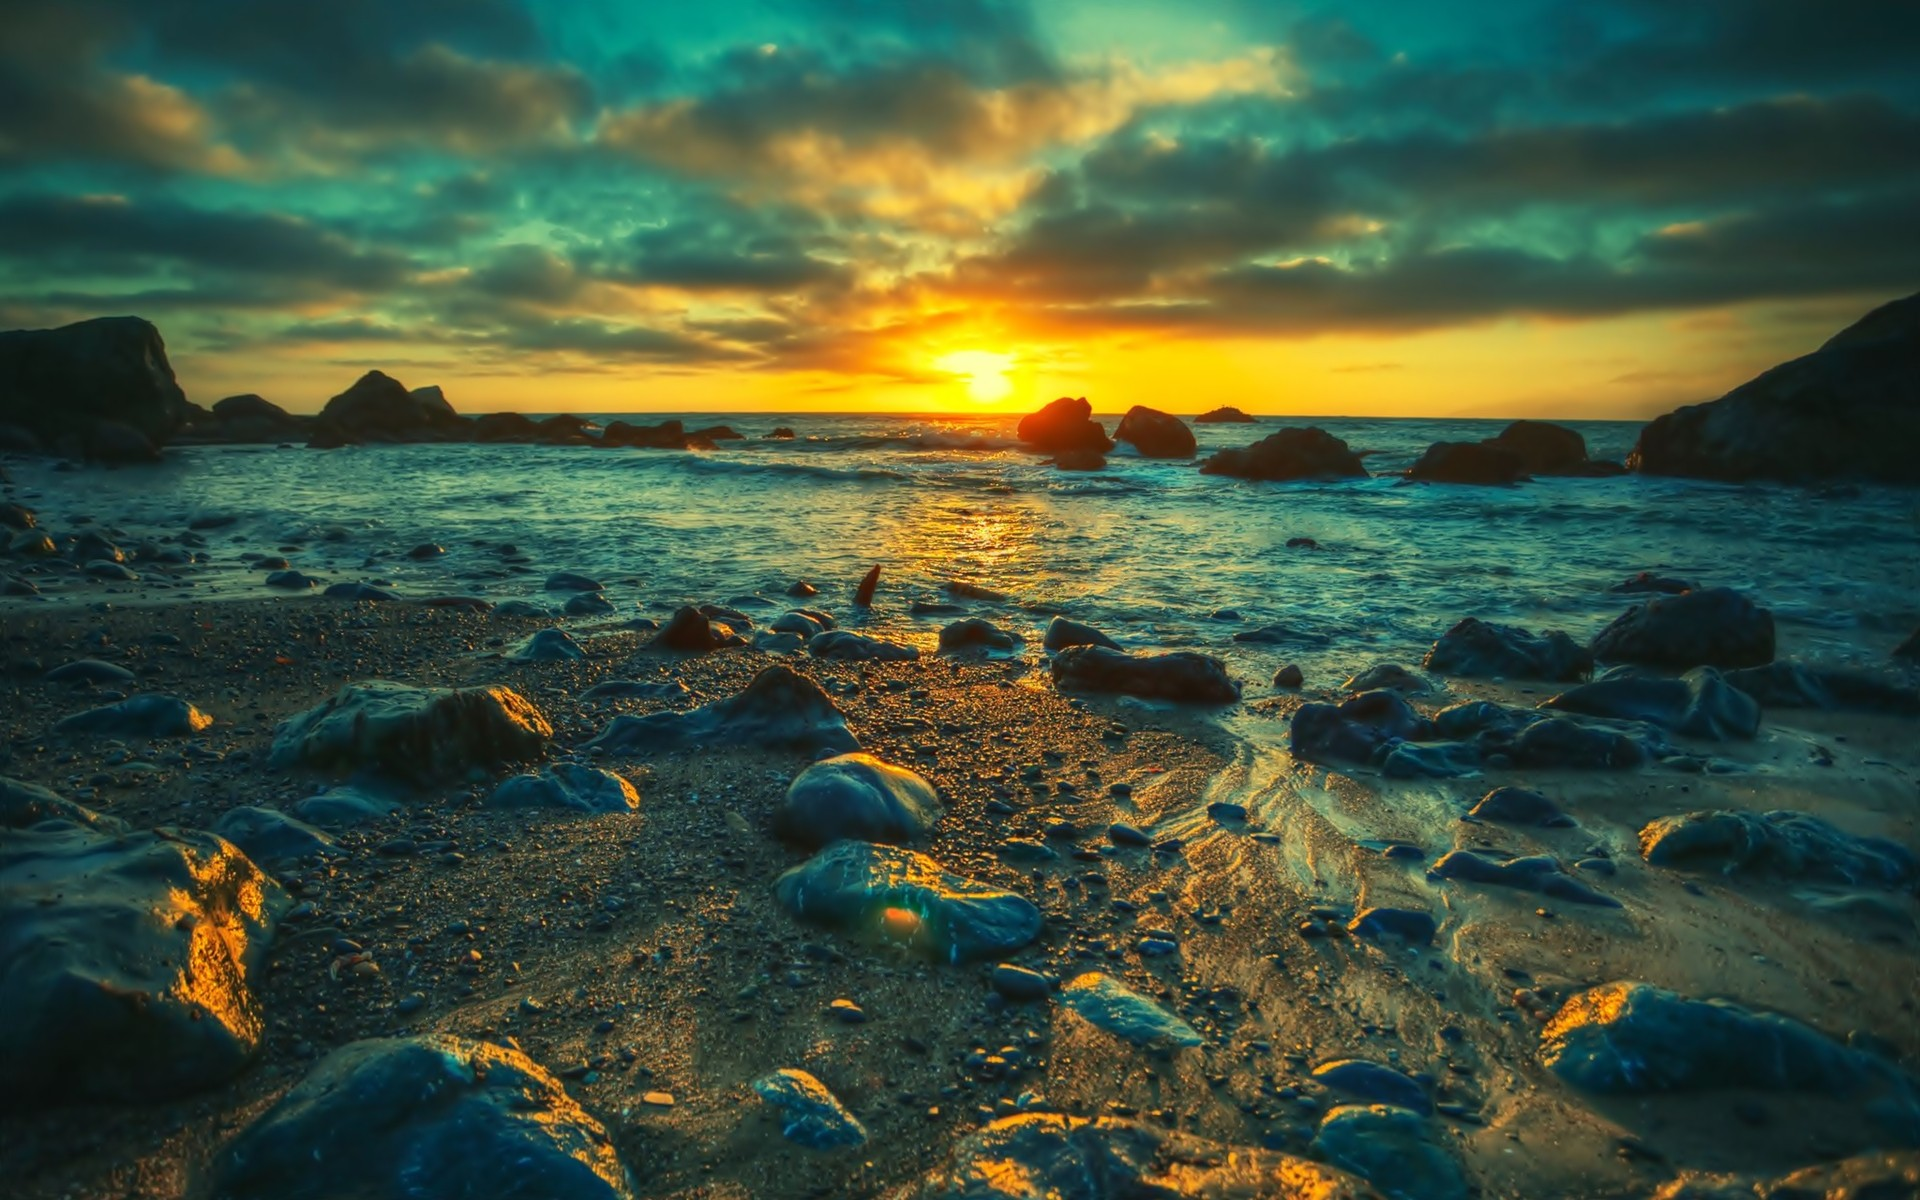 sunset sea nature landscape hd wallpapers new desktop nature images widescreen